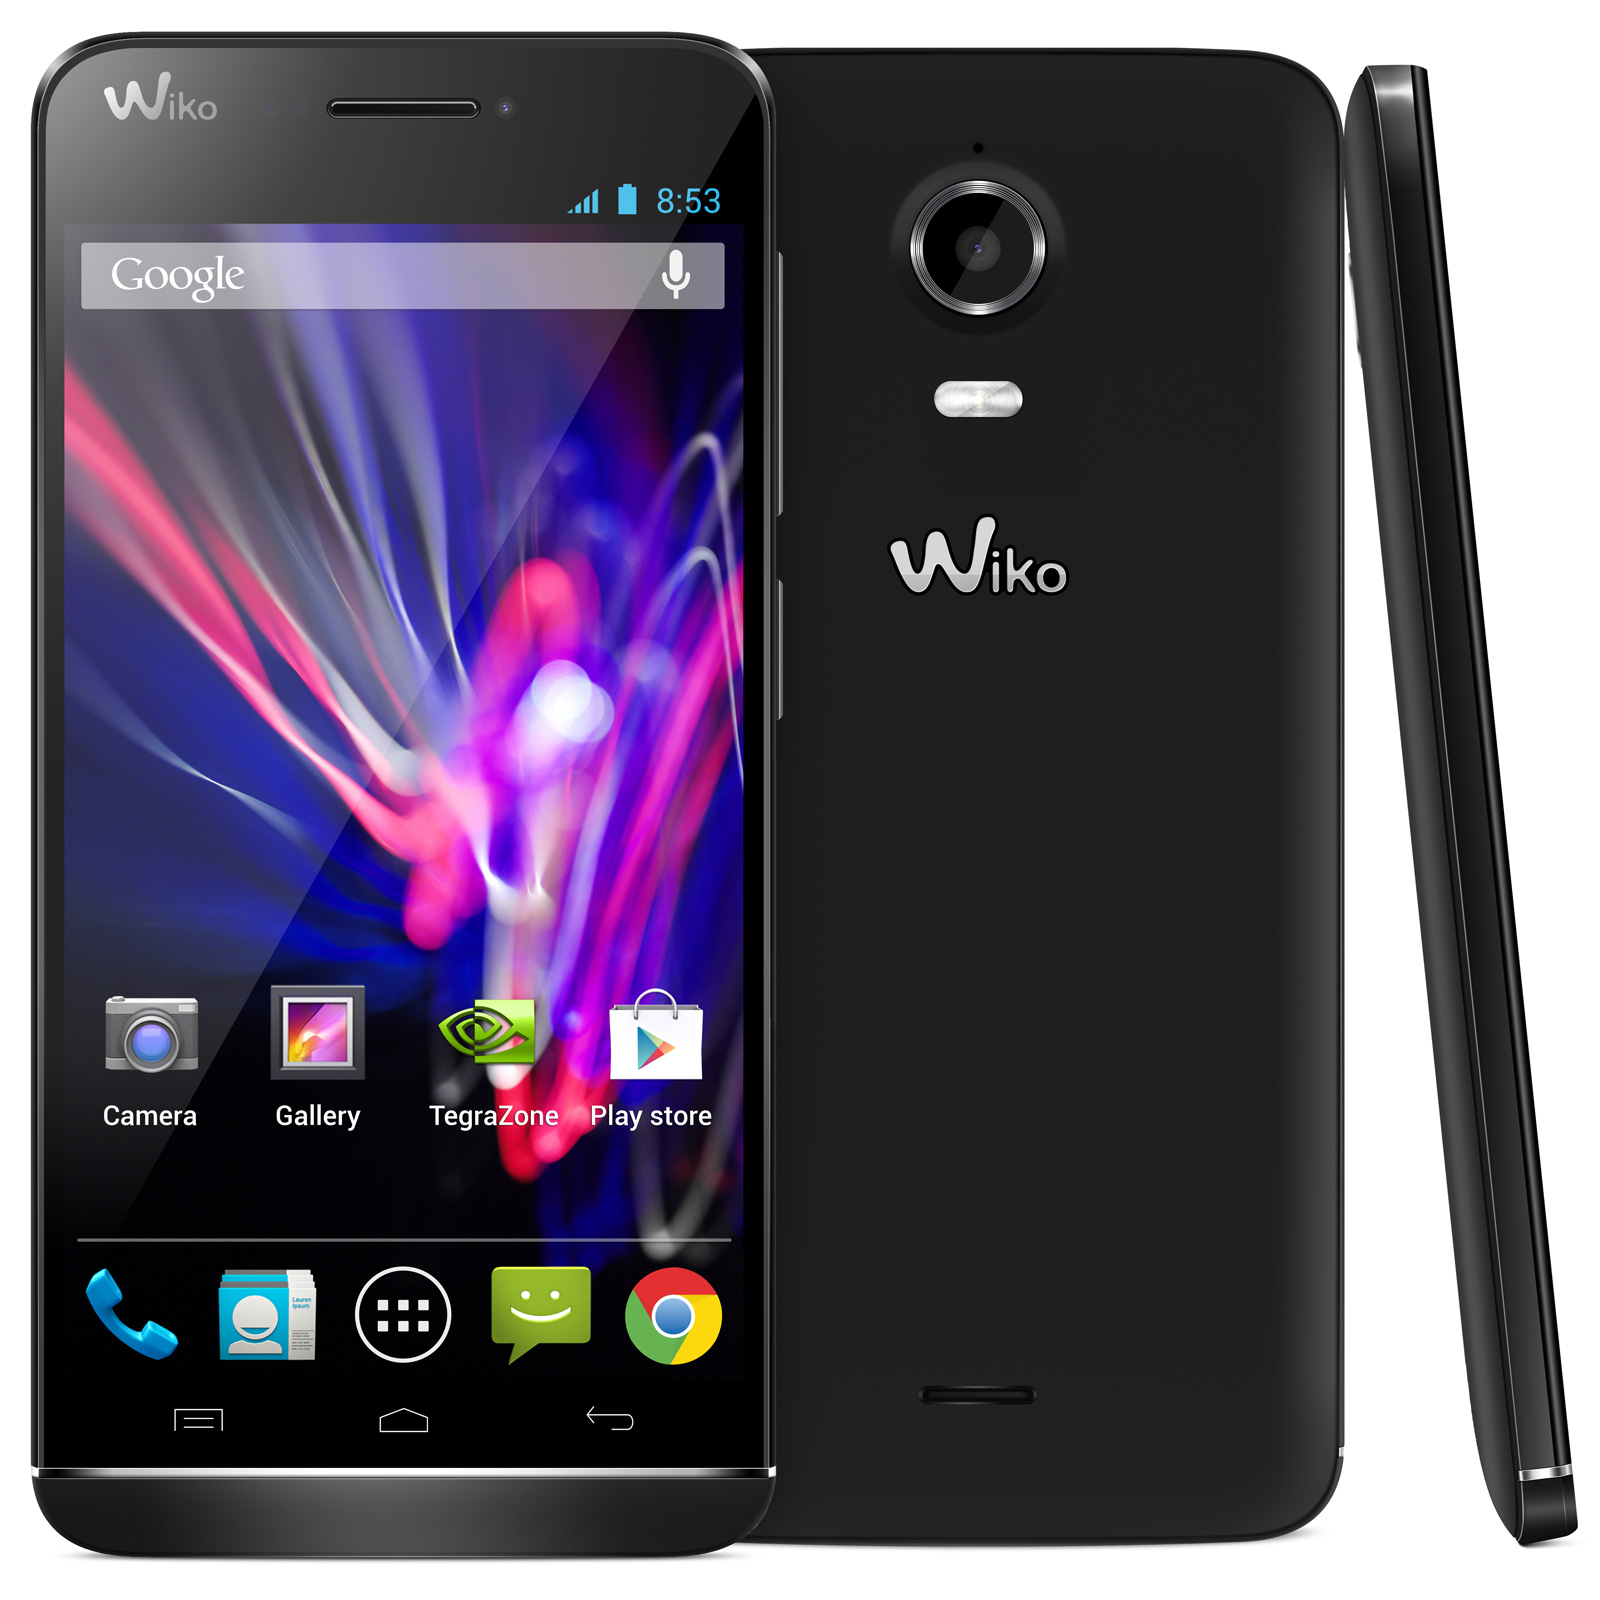 wiko wax noir mobile smartphone wiko sur. Black Bedroom Furniture Sets. Home Design Ideas